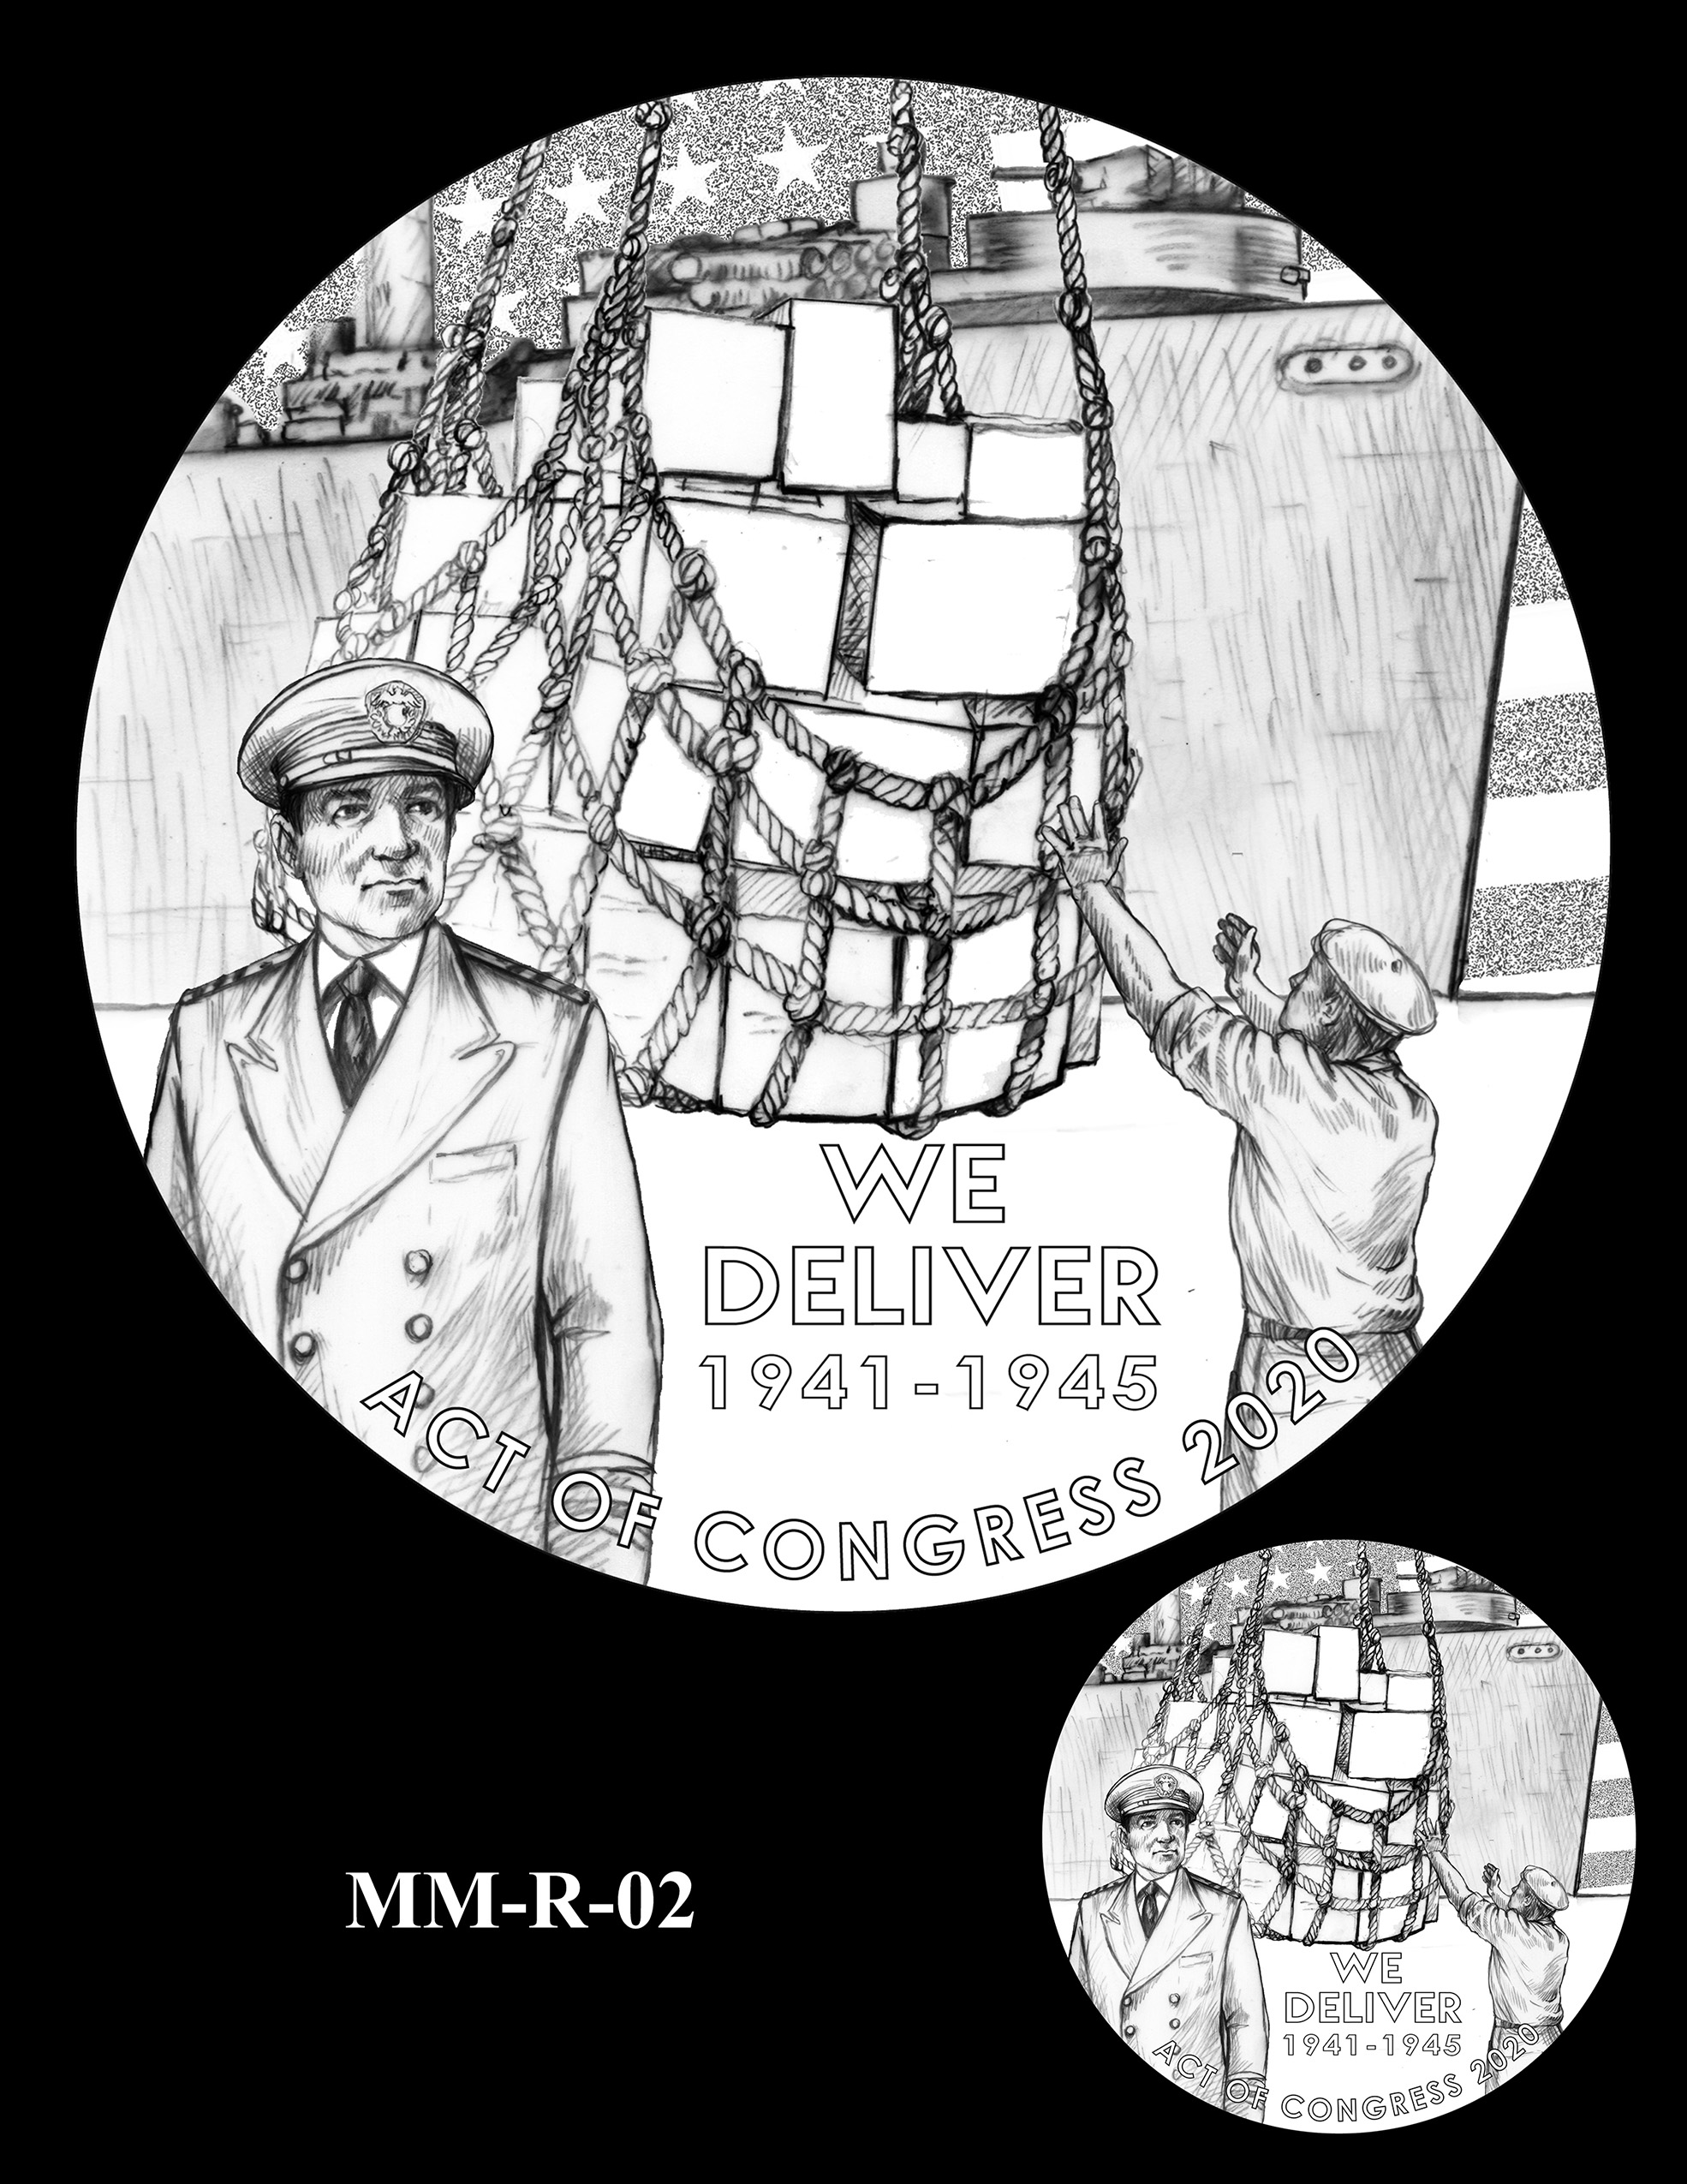 MM-R-02 -- Merchant Mariners of World War II Congressional Gold Medal